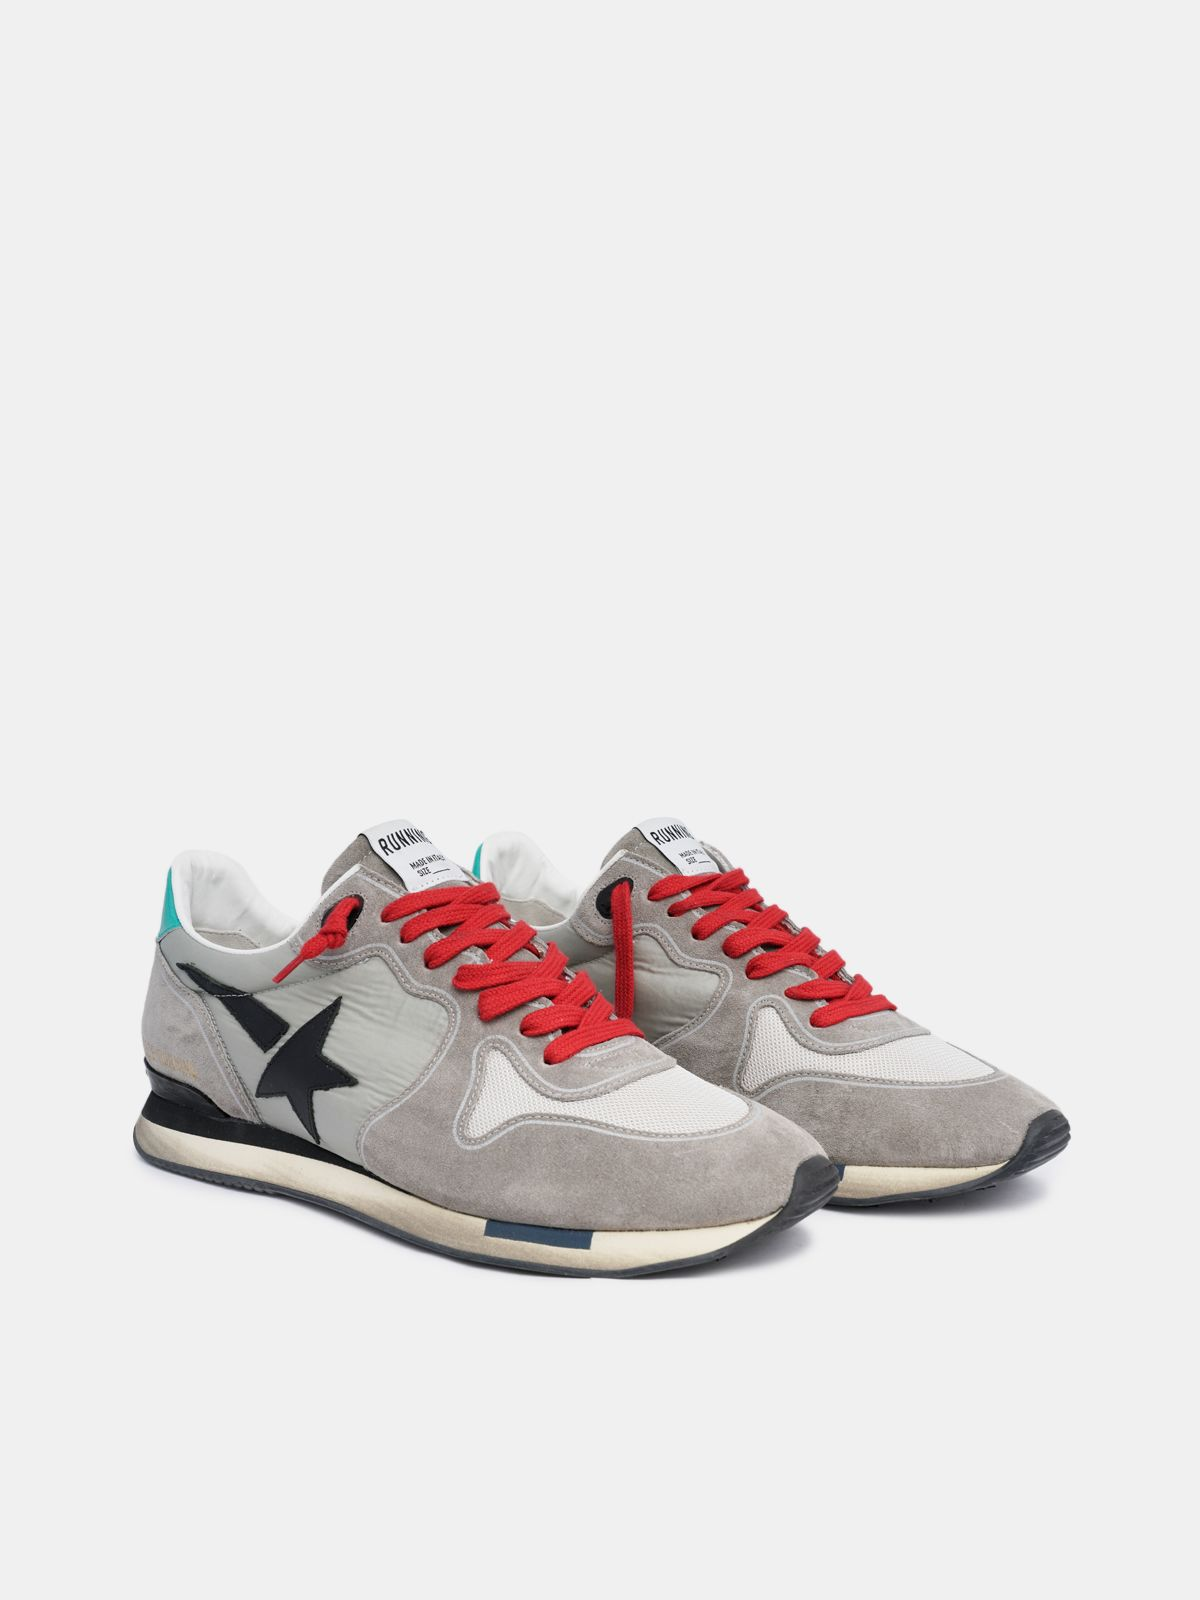 Golden Goose - Grey Running sneakers in suede with red laces in